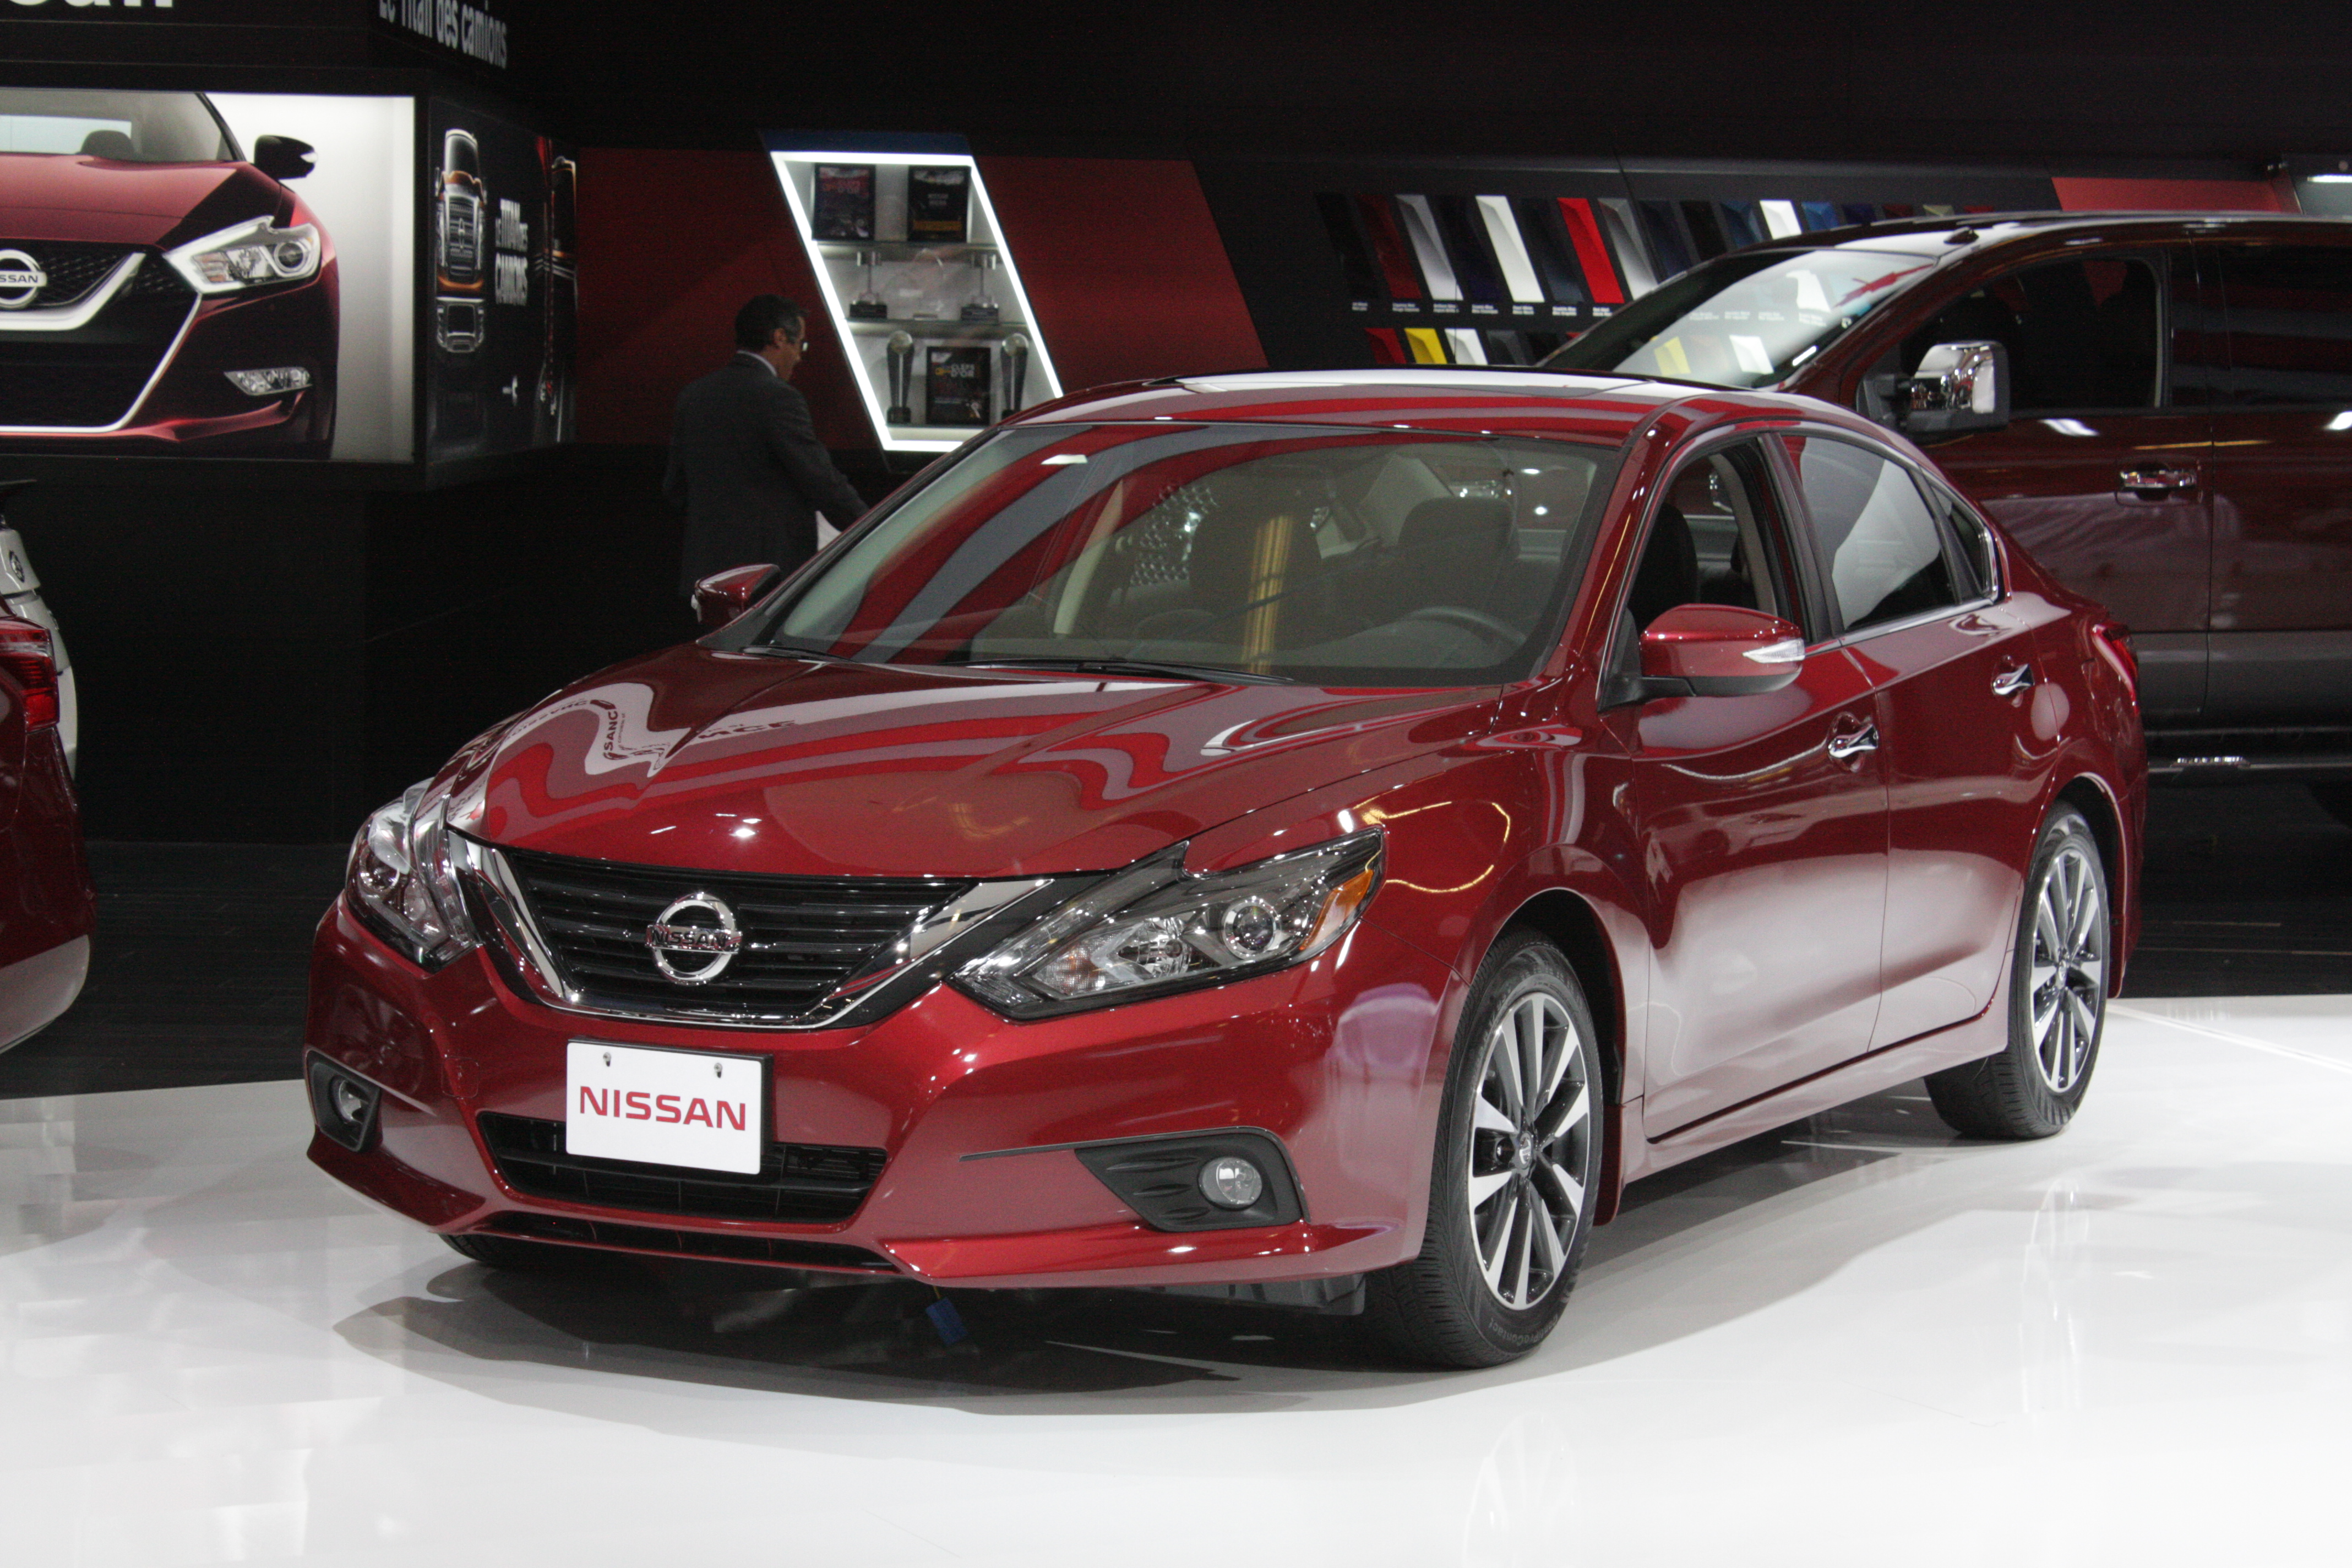 Nissan's mid-size Altima makes its Canadian debut in Montreal